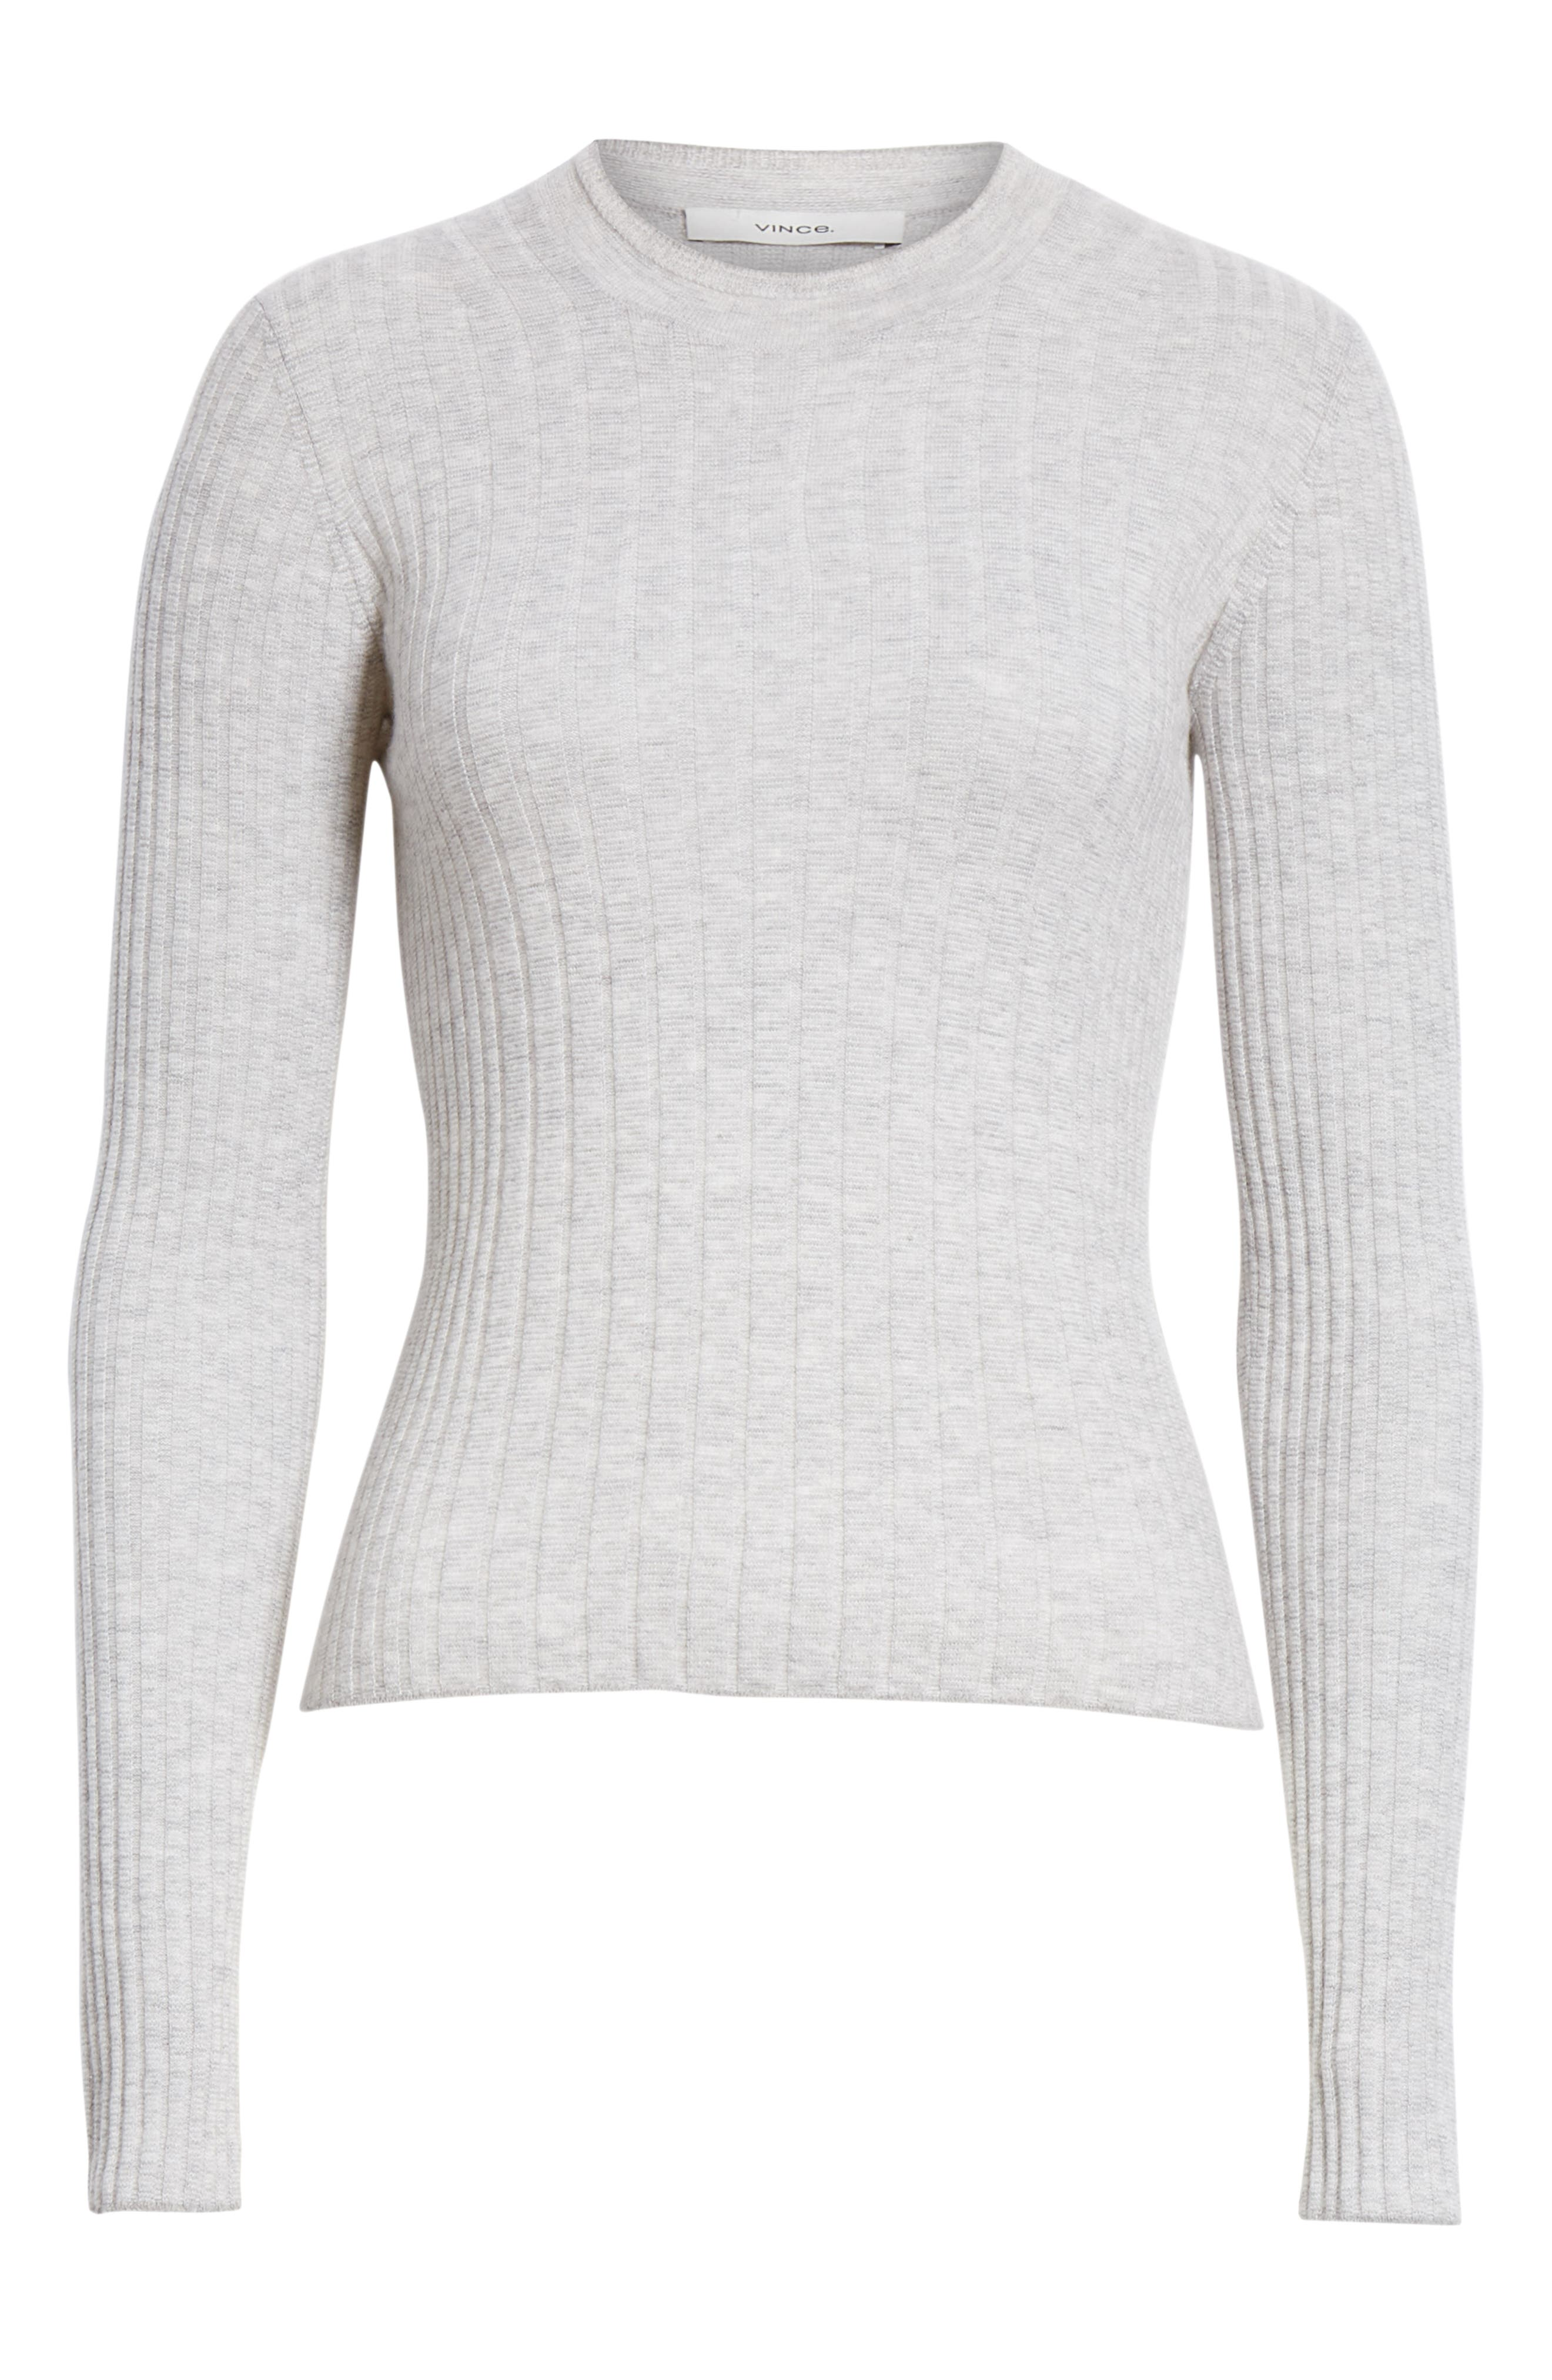 Mixed Rib Stitch Sweater,                             Alternate thumbnail 6, color,                             H STEEL/ OFF WHITE